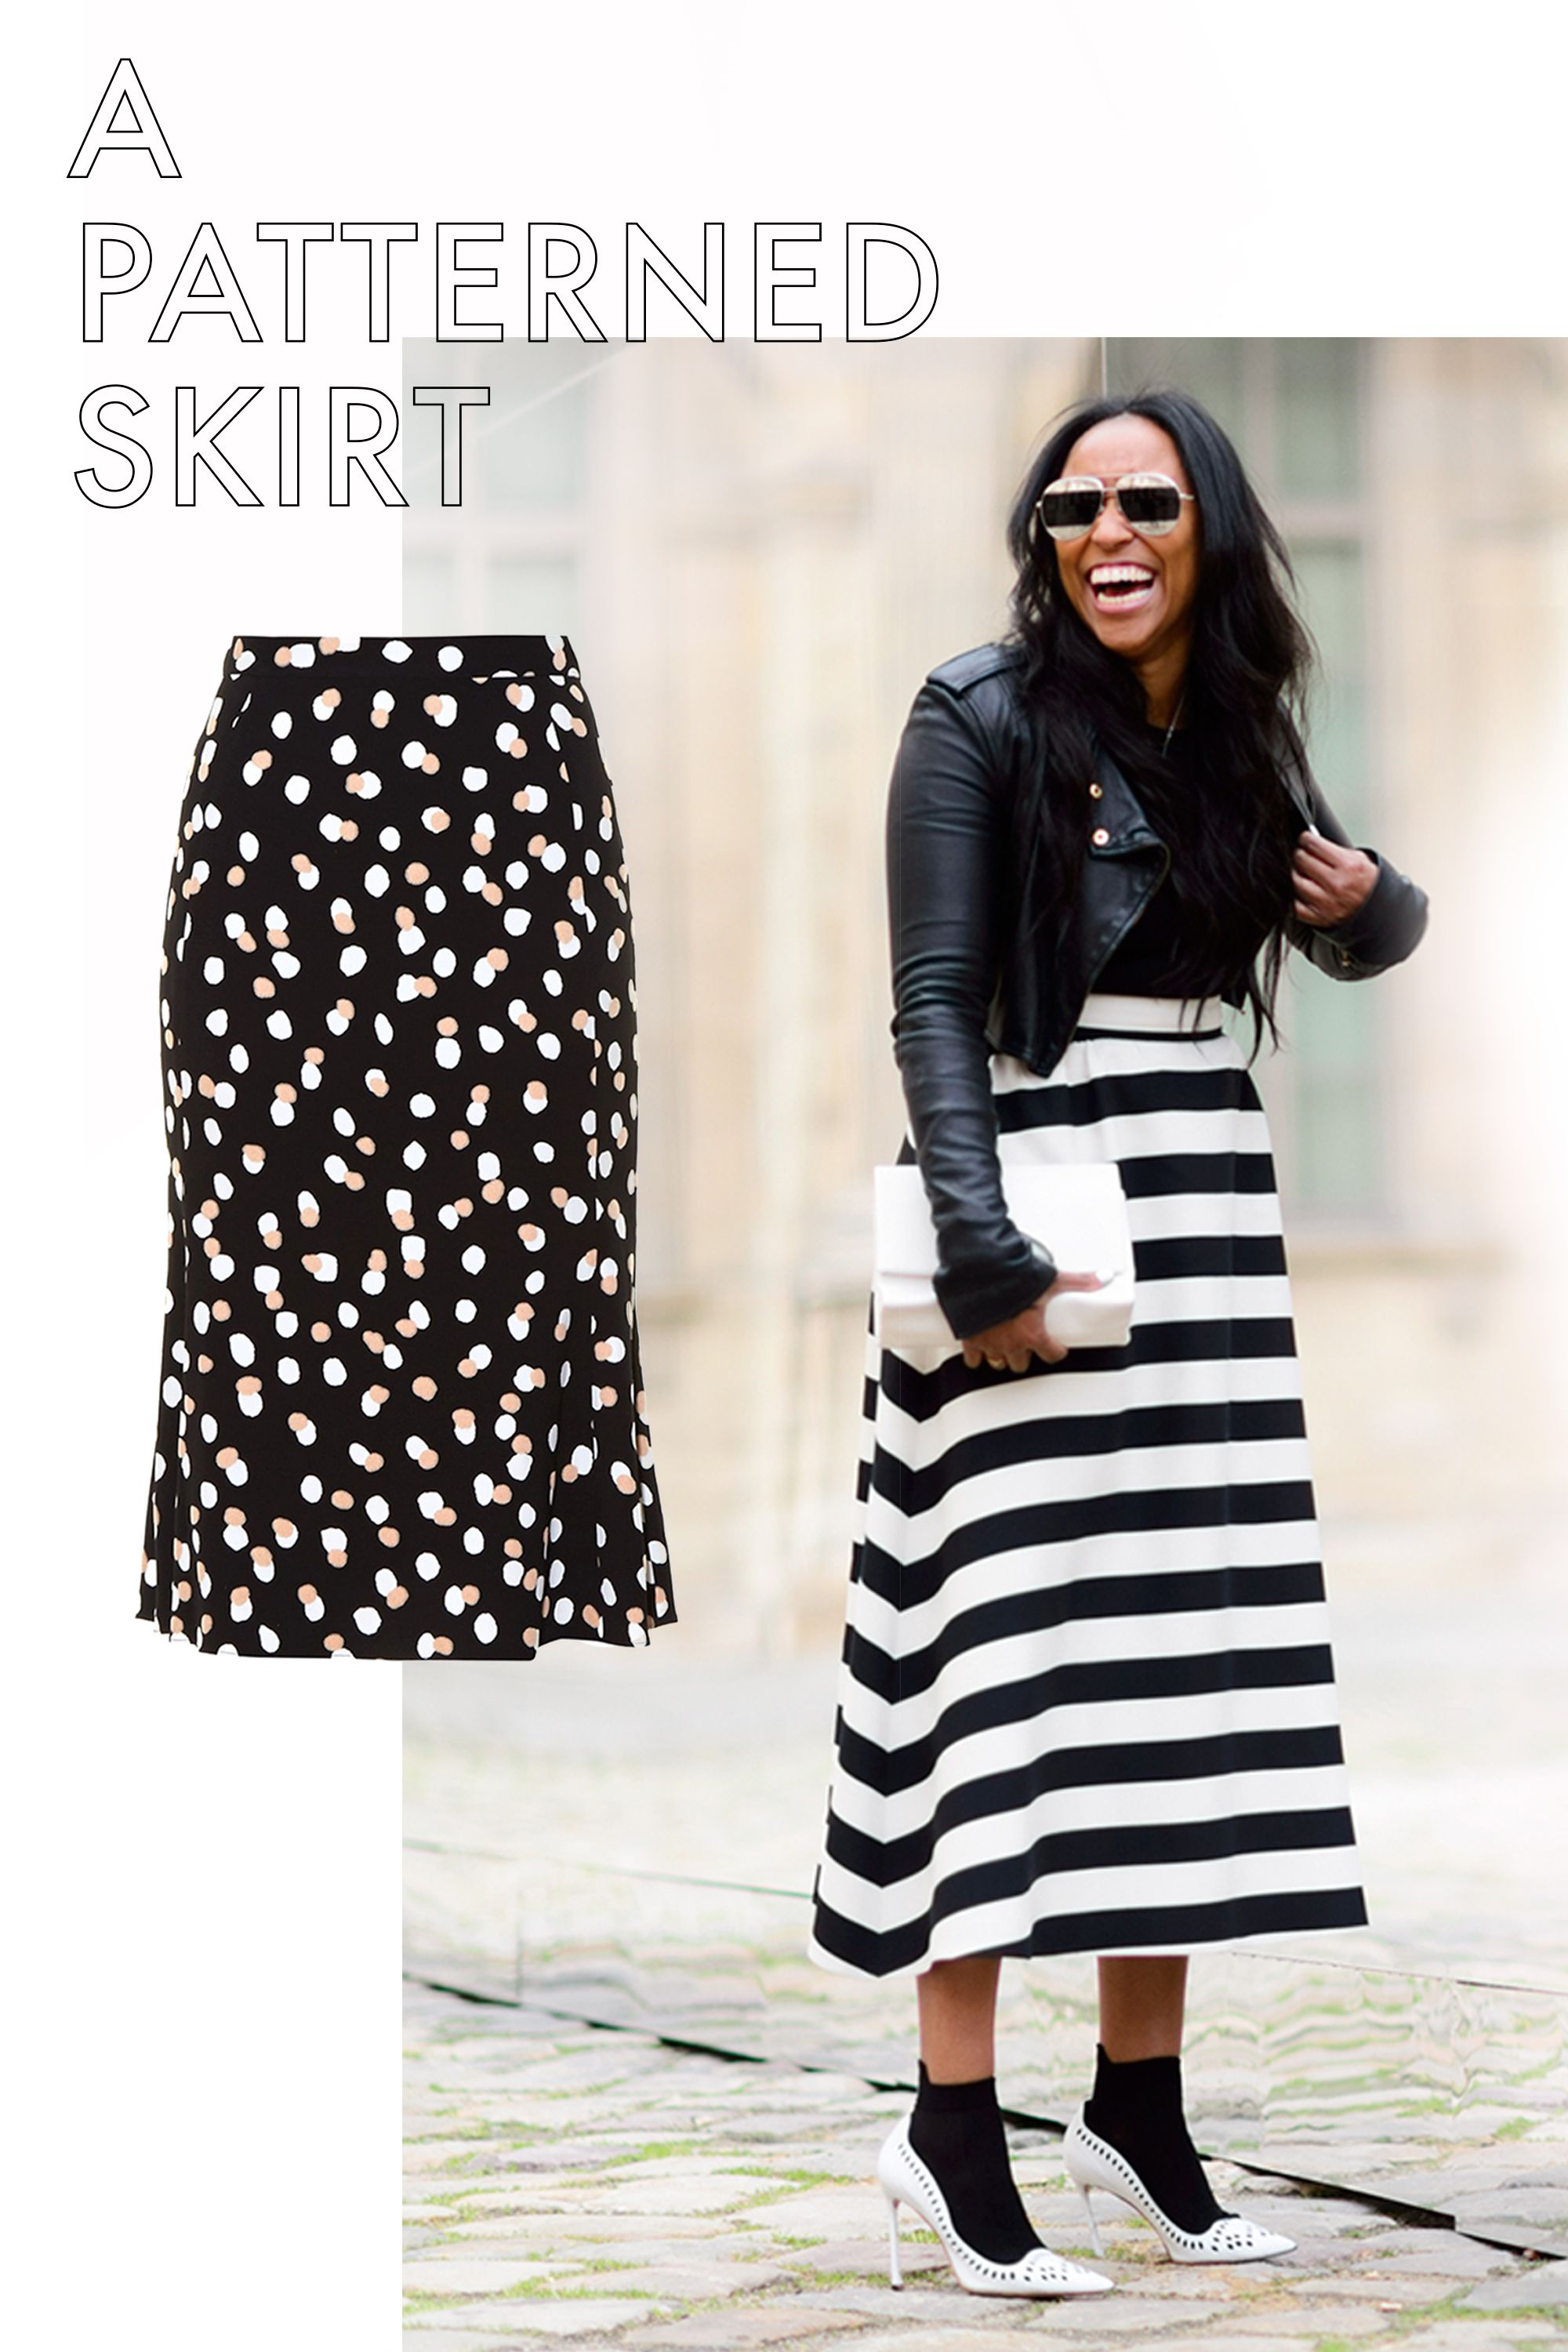 "<p>A bold print or pattern has the power to lift your spirits and your look. All over polka dots, bright florals, and stripes, for example, are all good examples of mood-boosting prints. Paired with simple basics (a white tee shirt, simple black pumps) and you've got a real look.</p><p><em>Altuzarra Novak Polka-Dot Stretch-Crepe Skirt, $1,150&#x3B; <a href=""http://www.matchesfashion.com/products/Altuzarra-Novak-polka-dot-stretch-cady-skirt-1053191""></a></em><a href=""http://www.matchesfashion.com/products/Altuzarra-Novak-polka-dot-stretch-cady-skirt-1053191"" target=""_blank""><em>matchesfashion.com</em></a></p>"